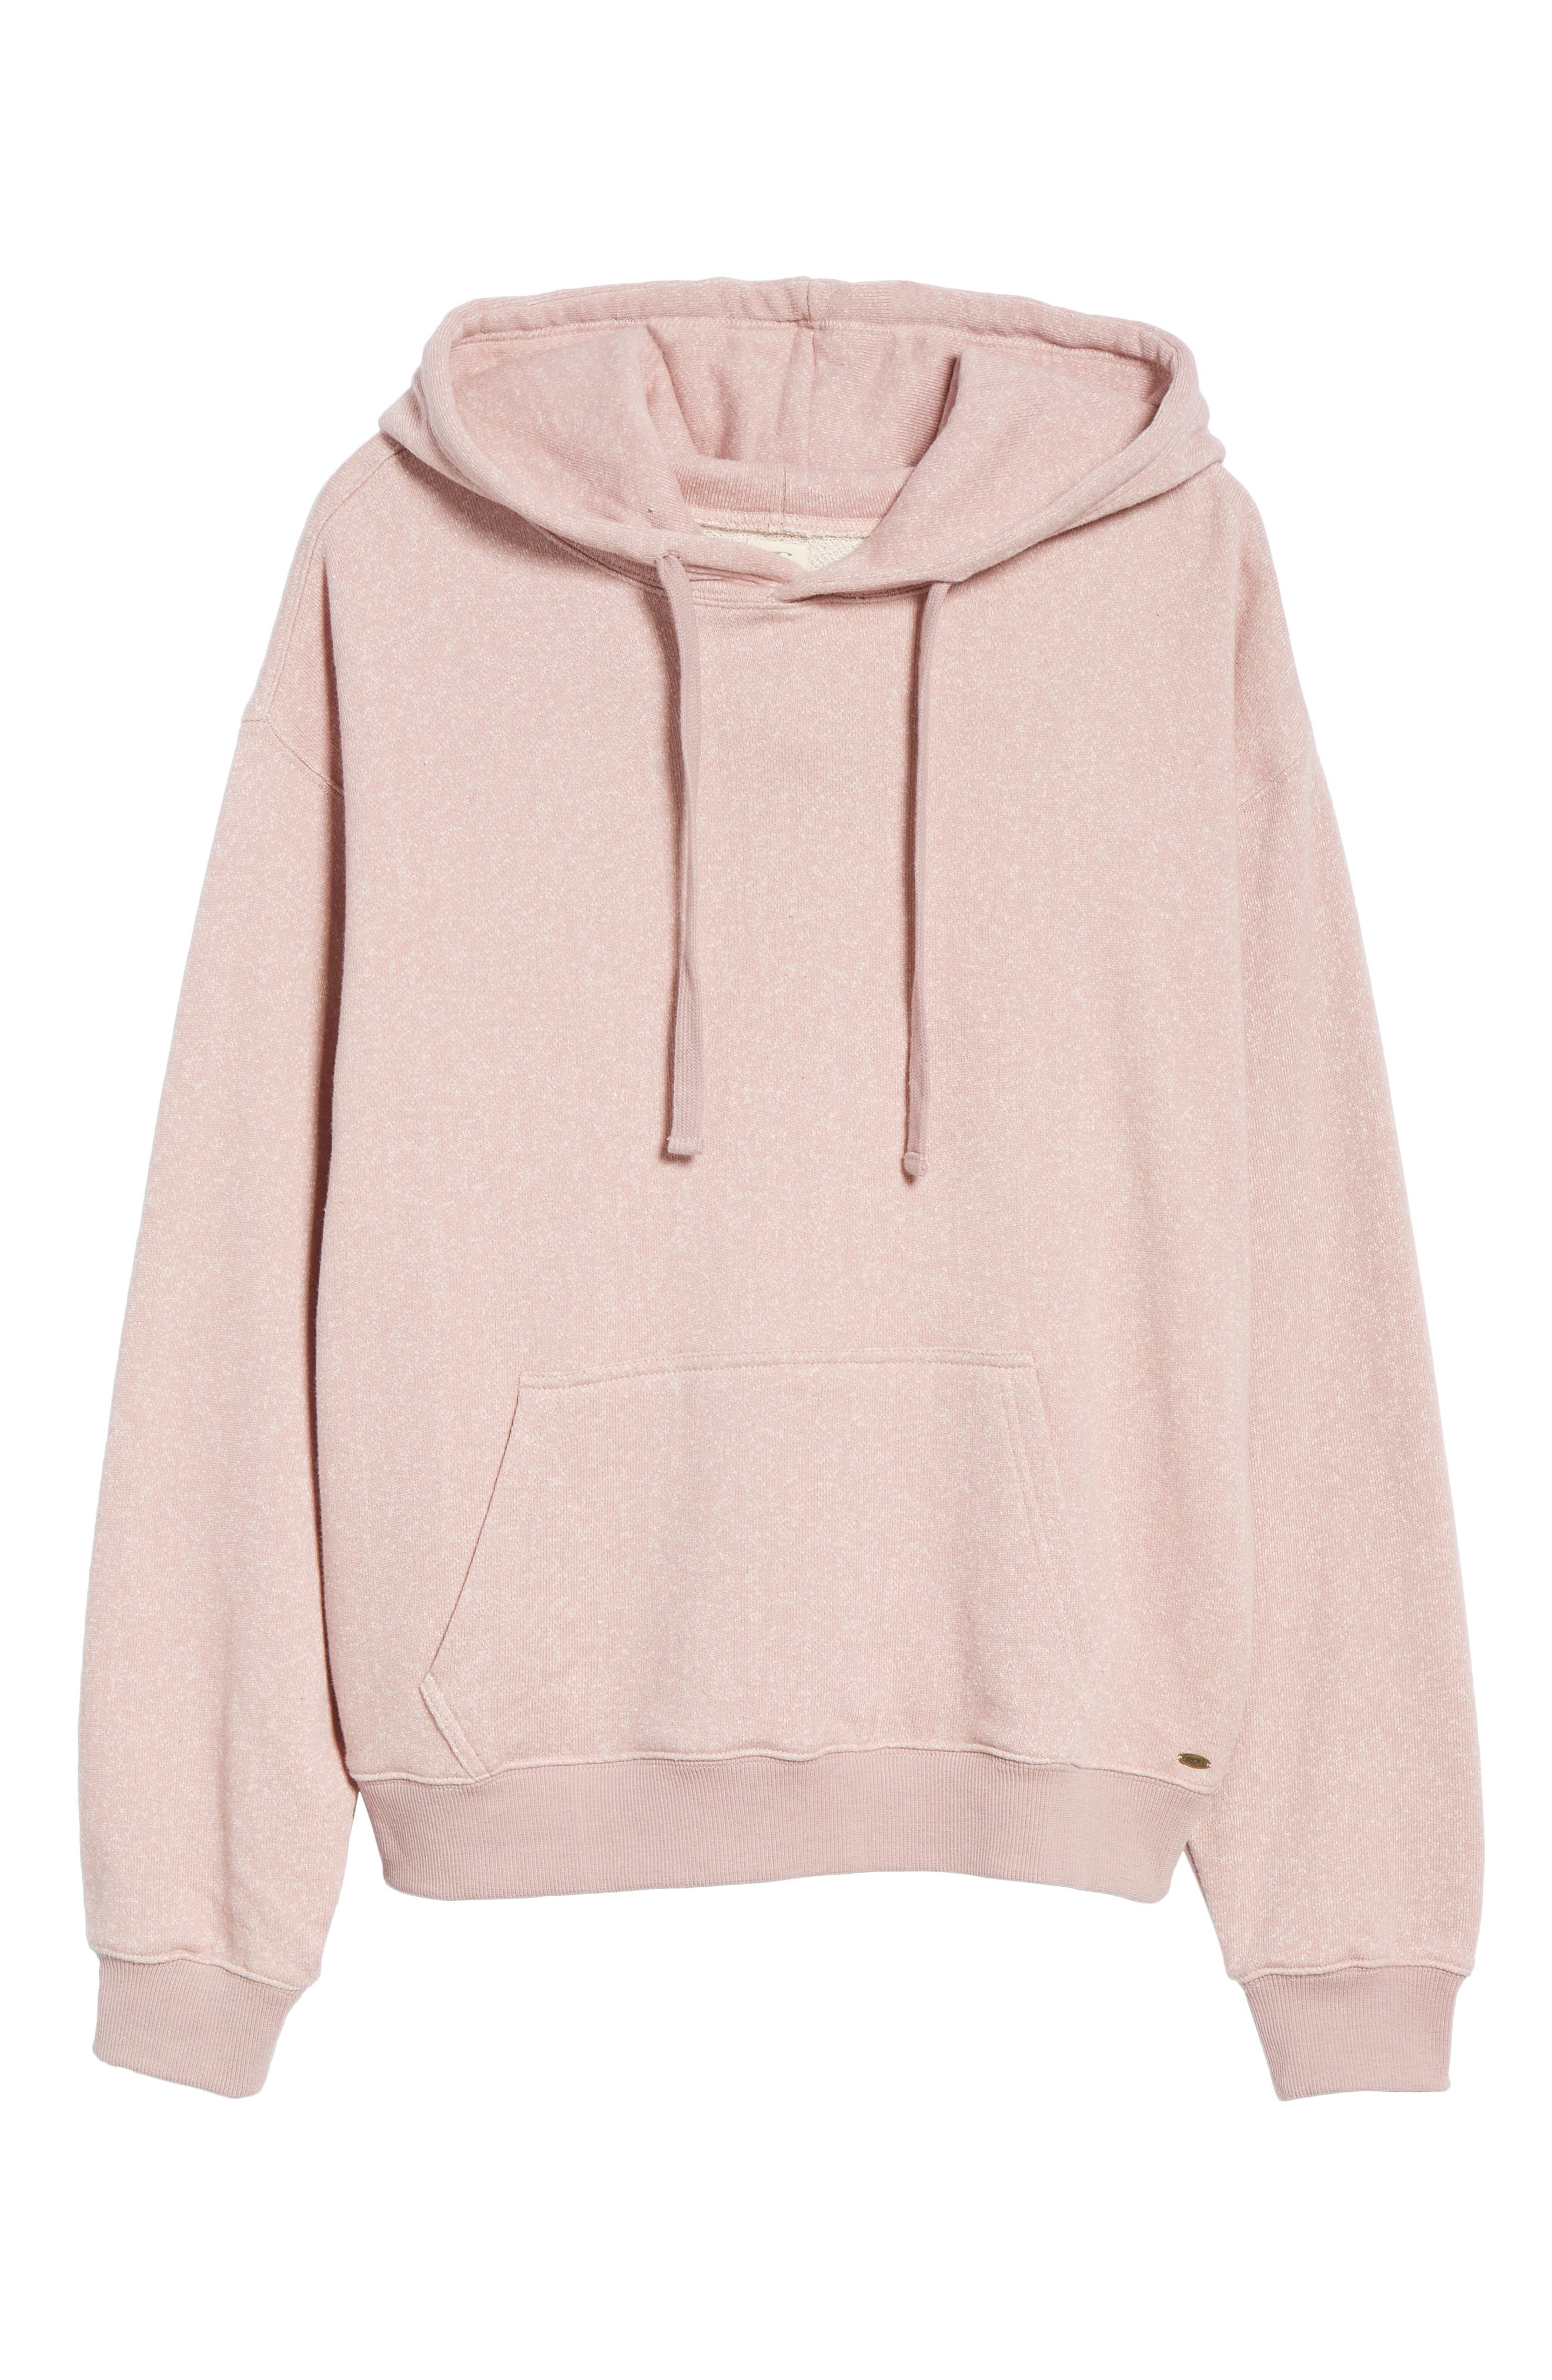 Shelbee Hoodie,                             Alternate thumbnail 6, color,                             DEAUVILLE MAUVE